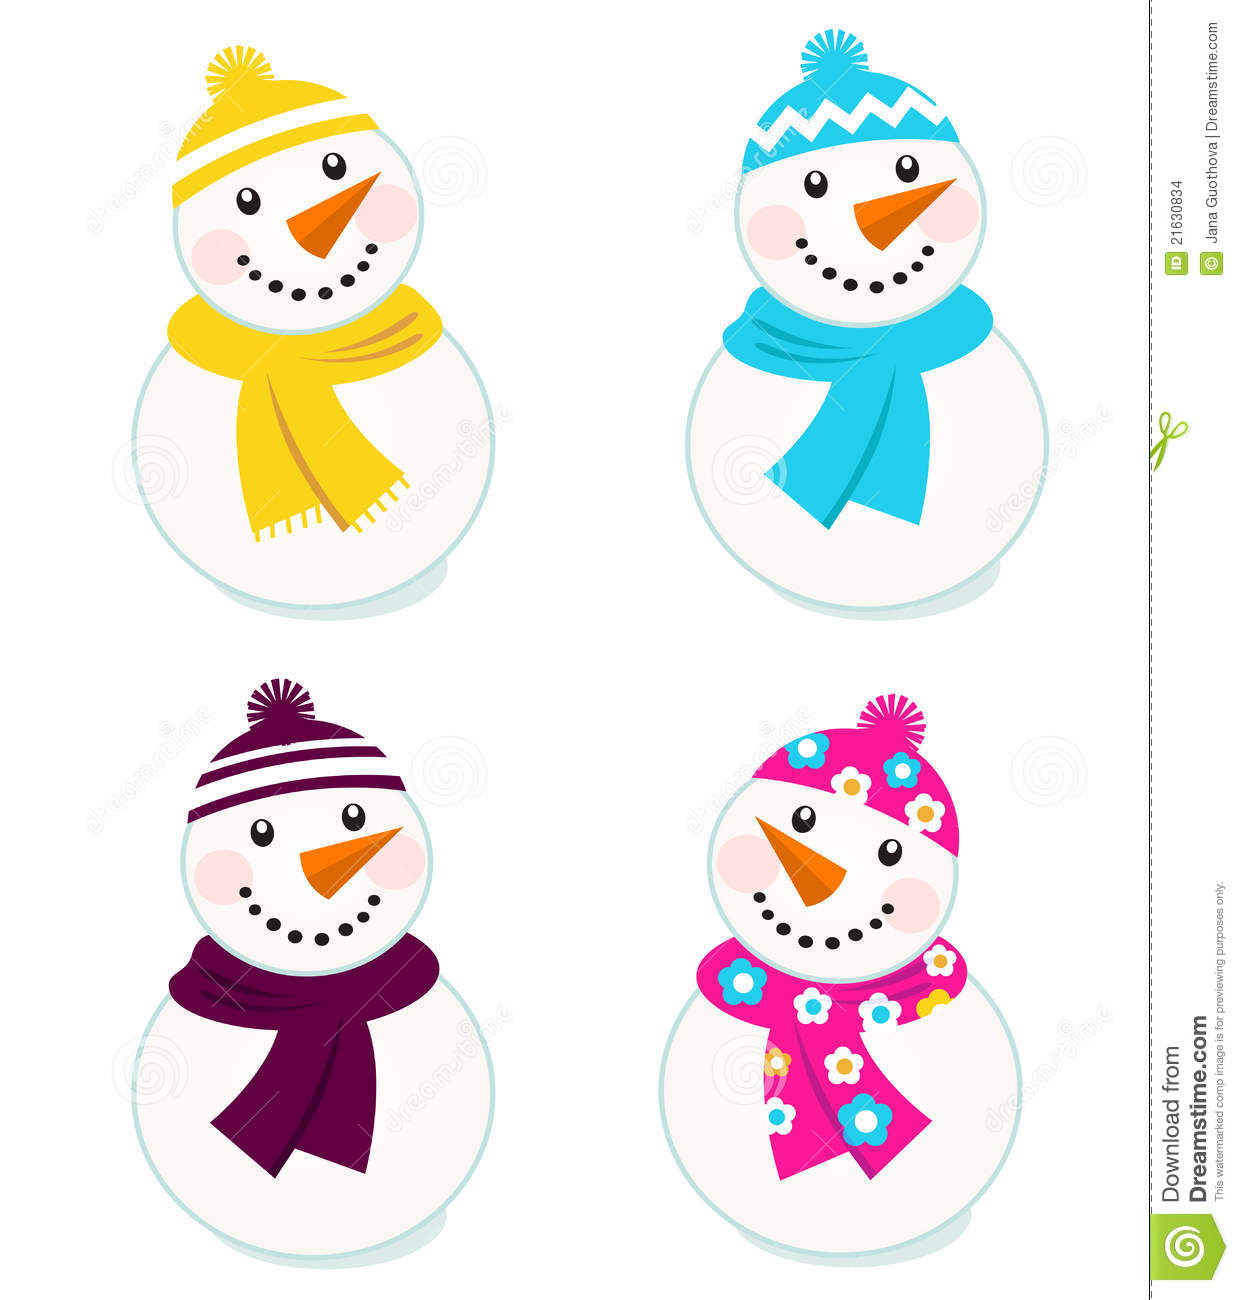 Snowman Family Clipart at GetDrawings.com.